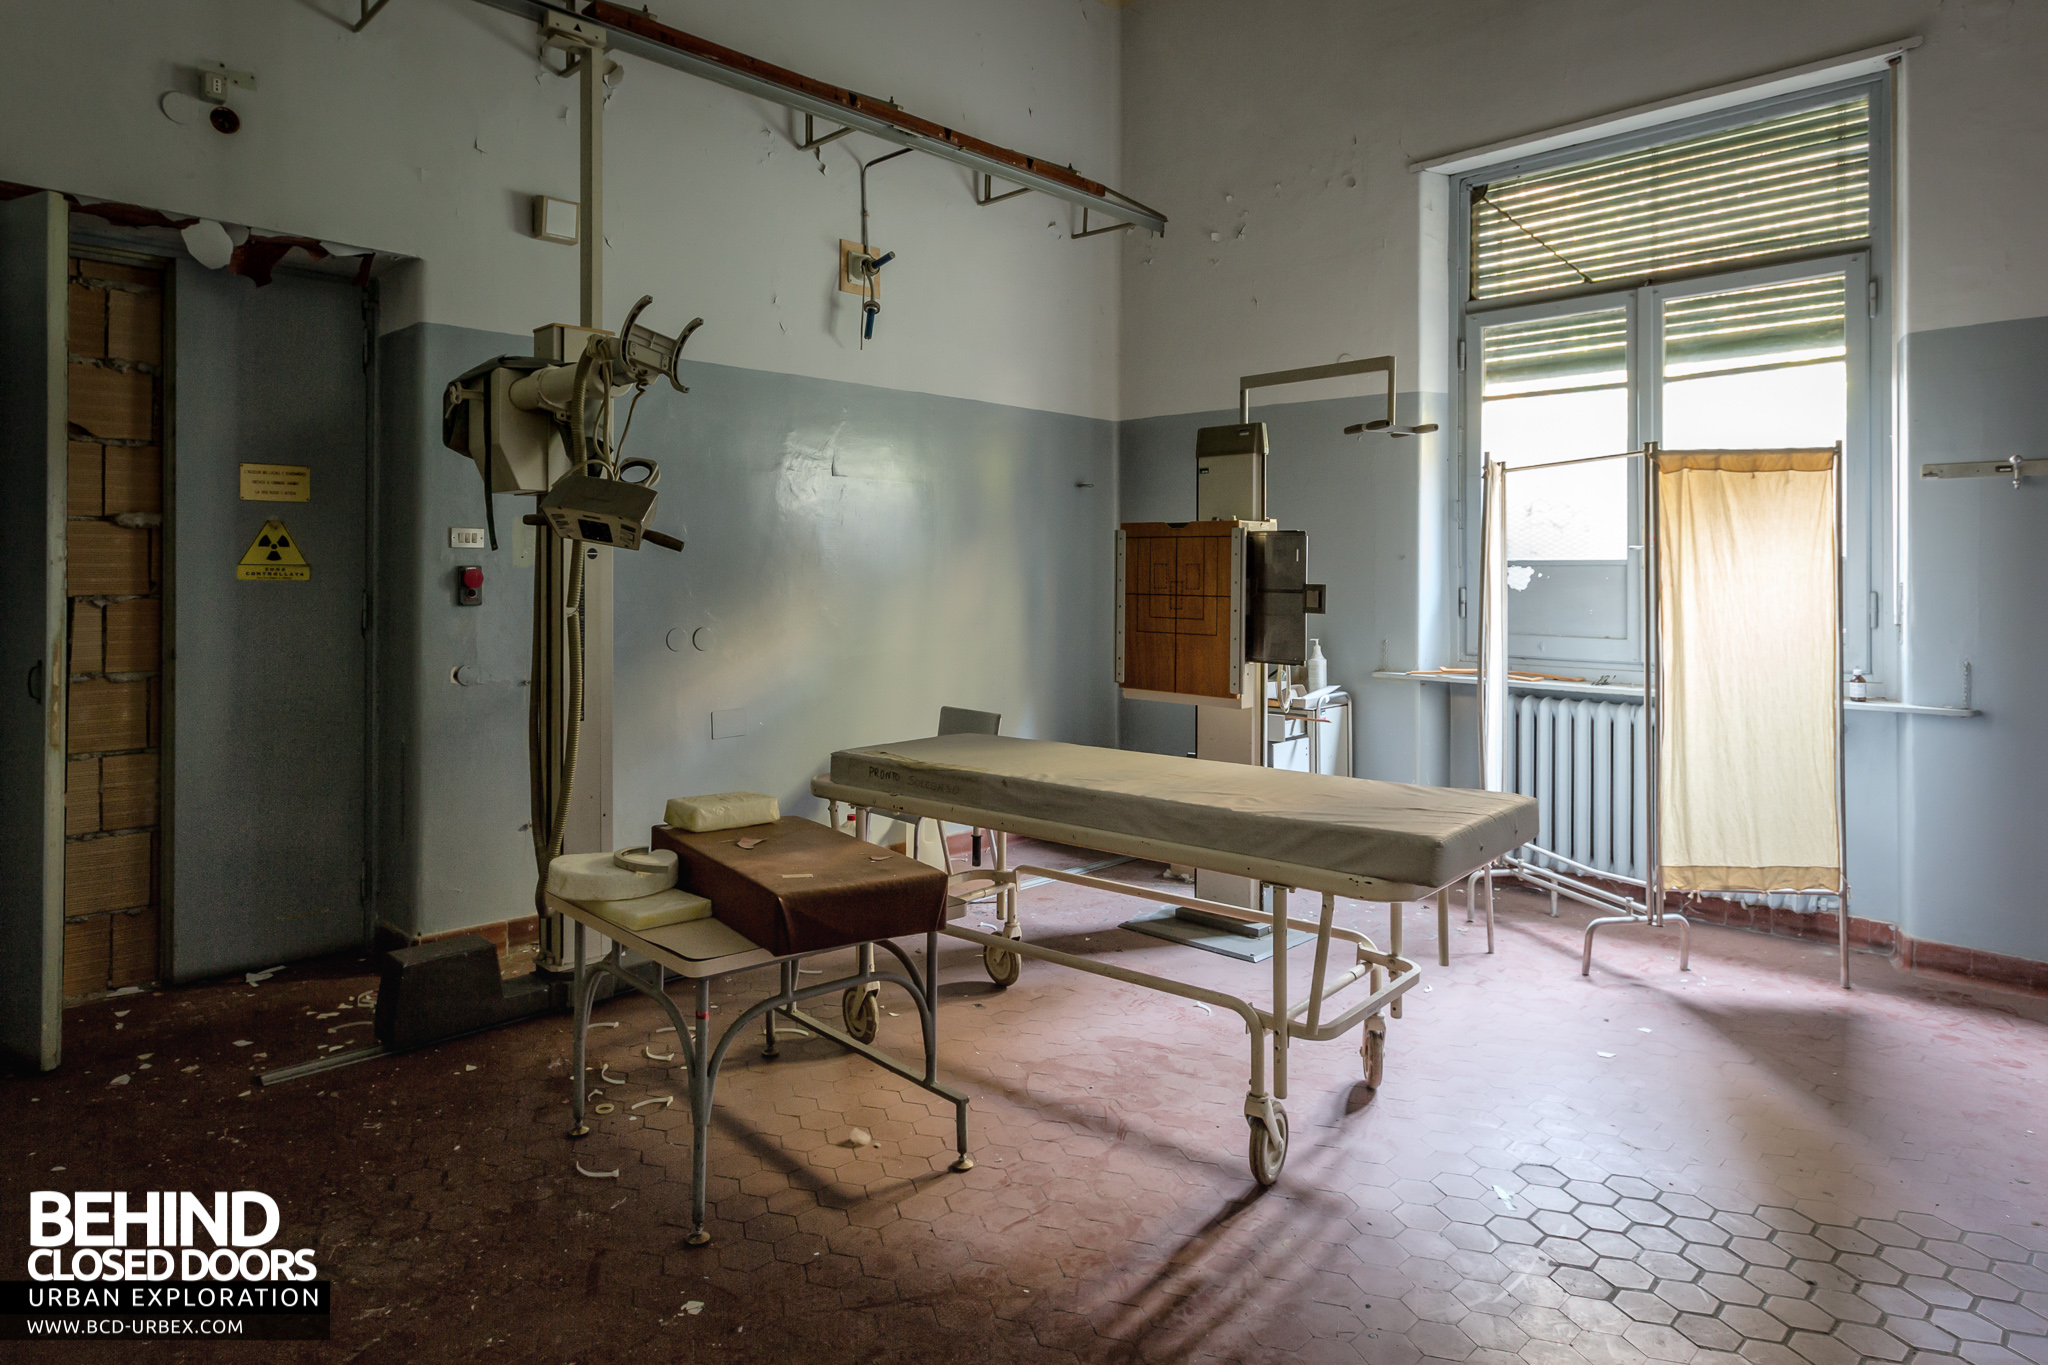 Hospital SC Italy Old Fashioned X Ray Equipment